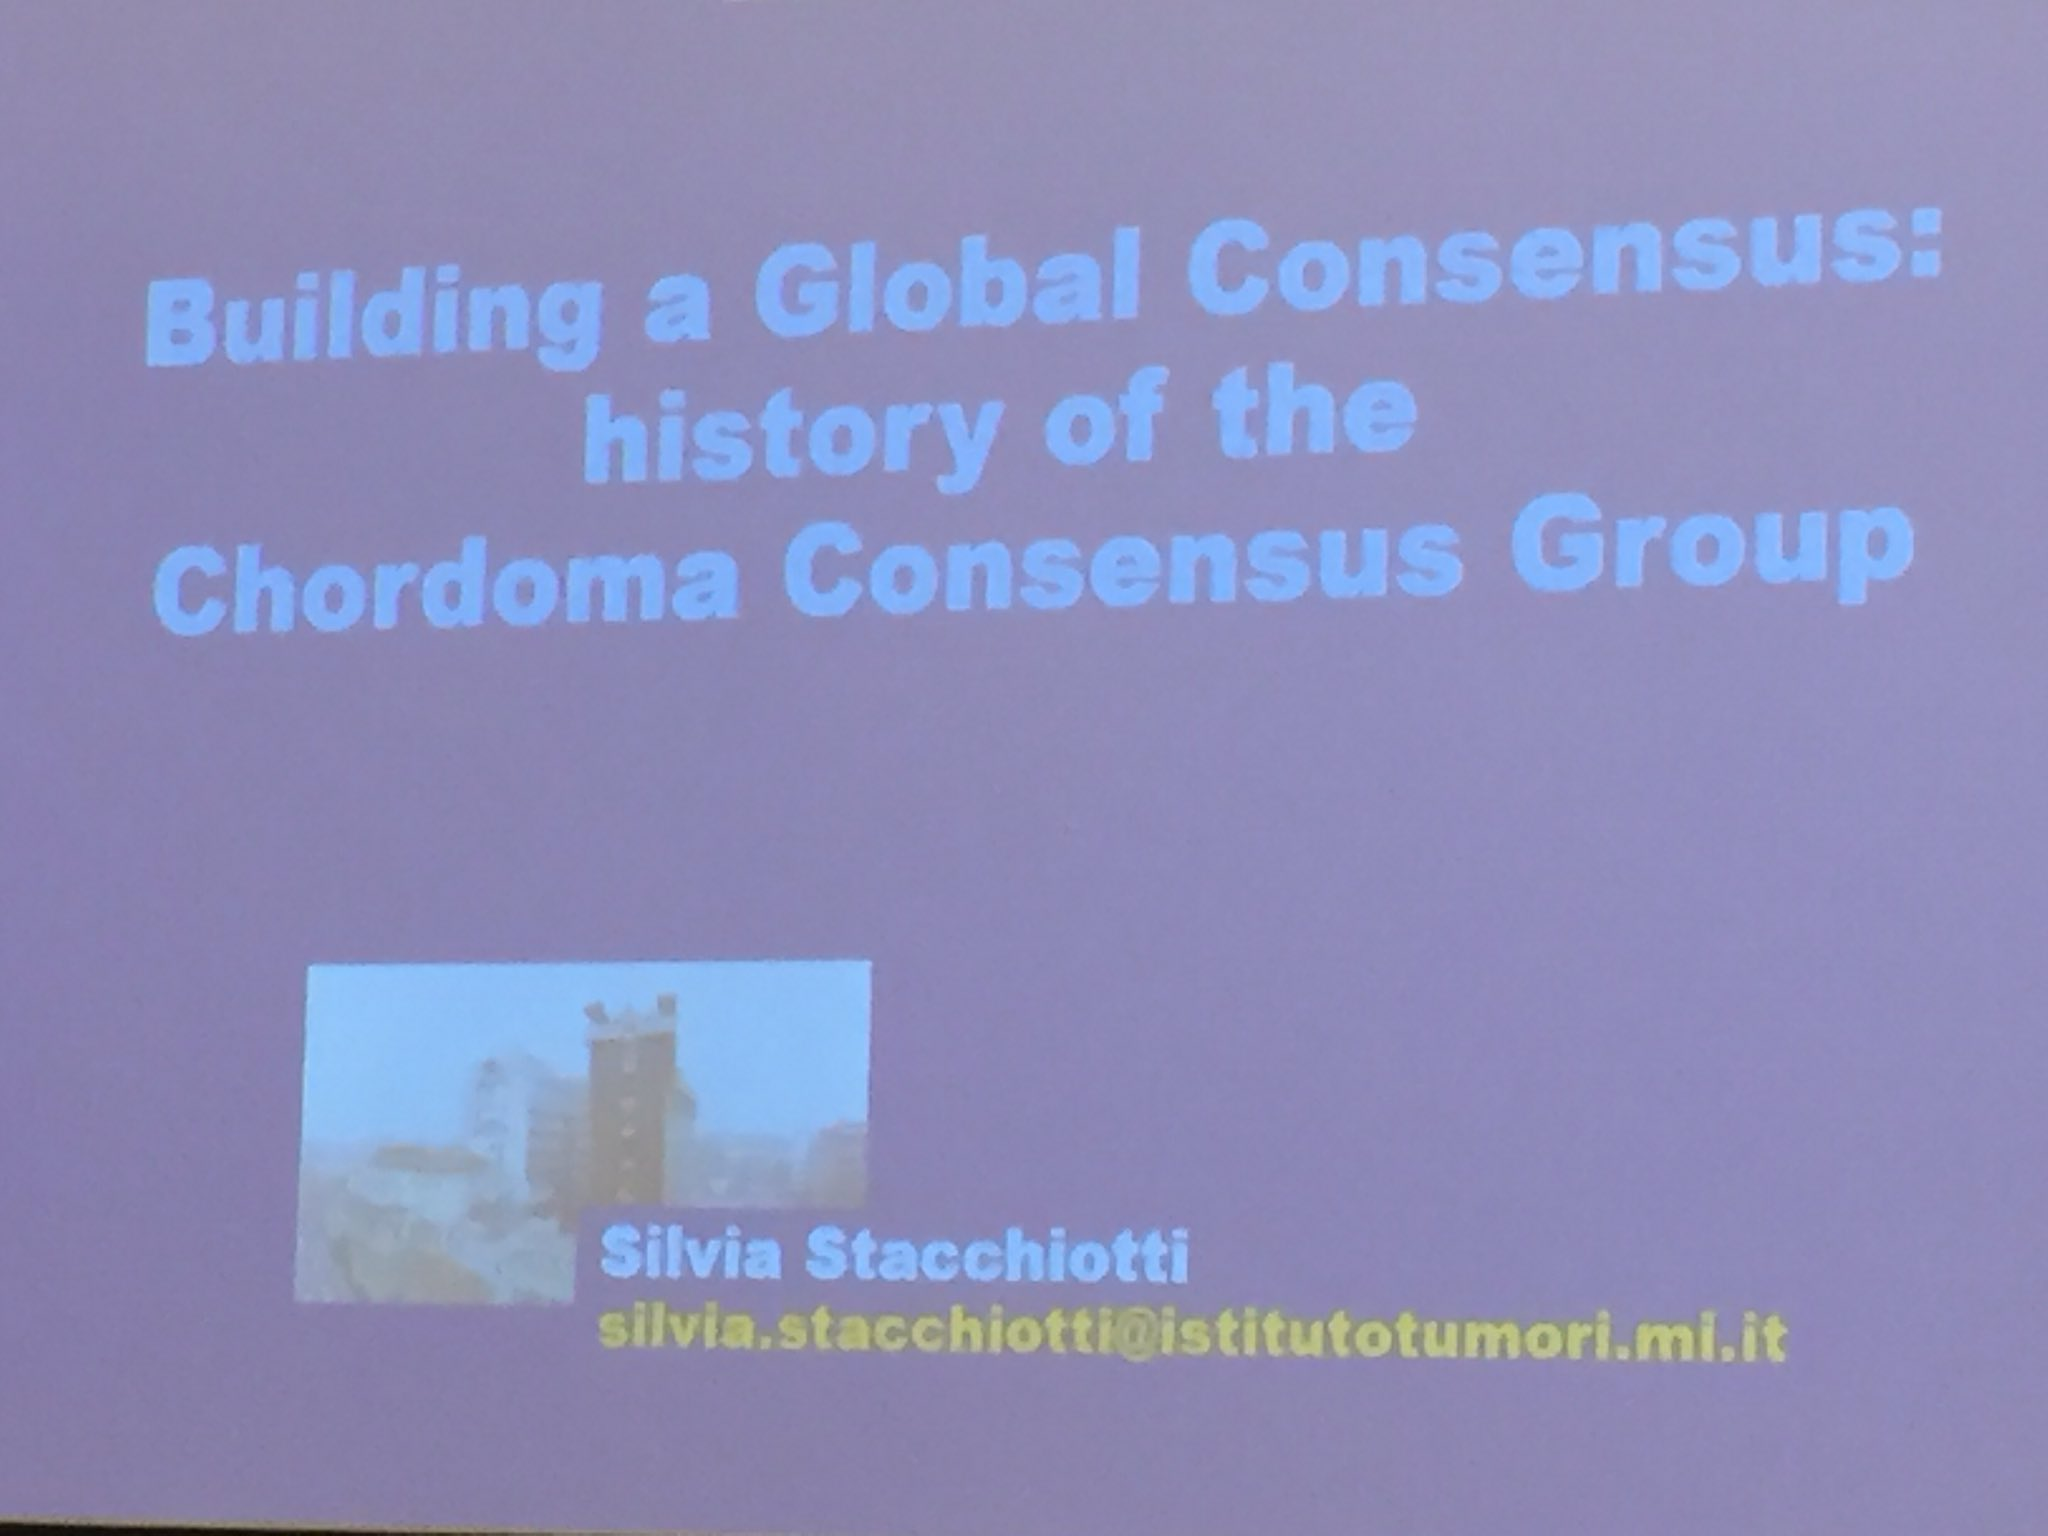 Welcome Silvia Stacchiotti, MD of .@IstTumori #milan at #Chordoma conference #chordomacommunity https://t.co/uDdZK2y5uf